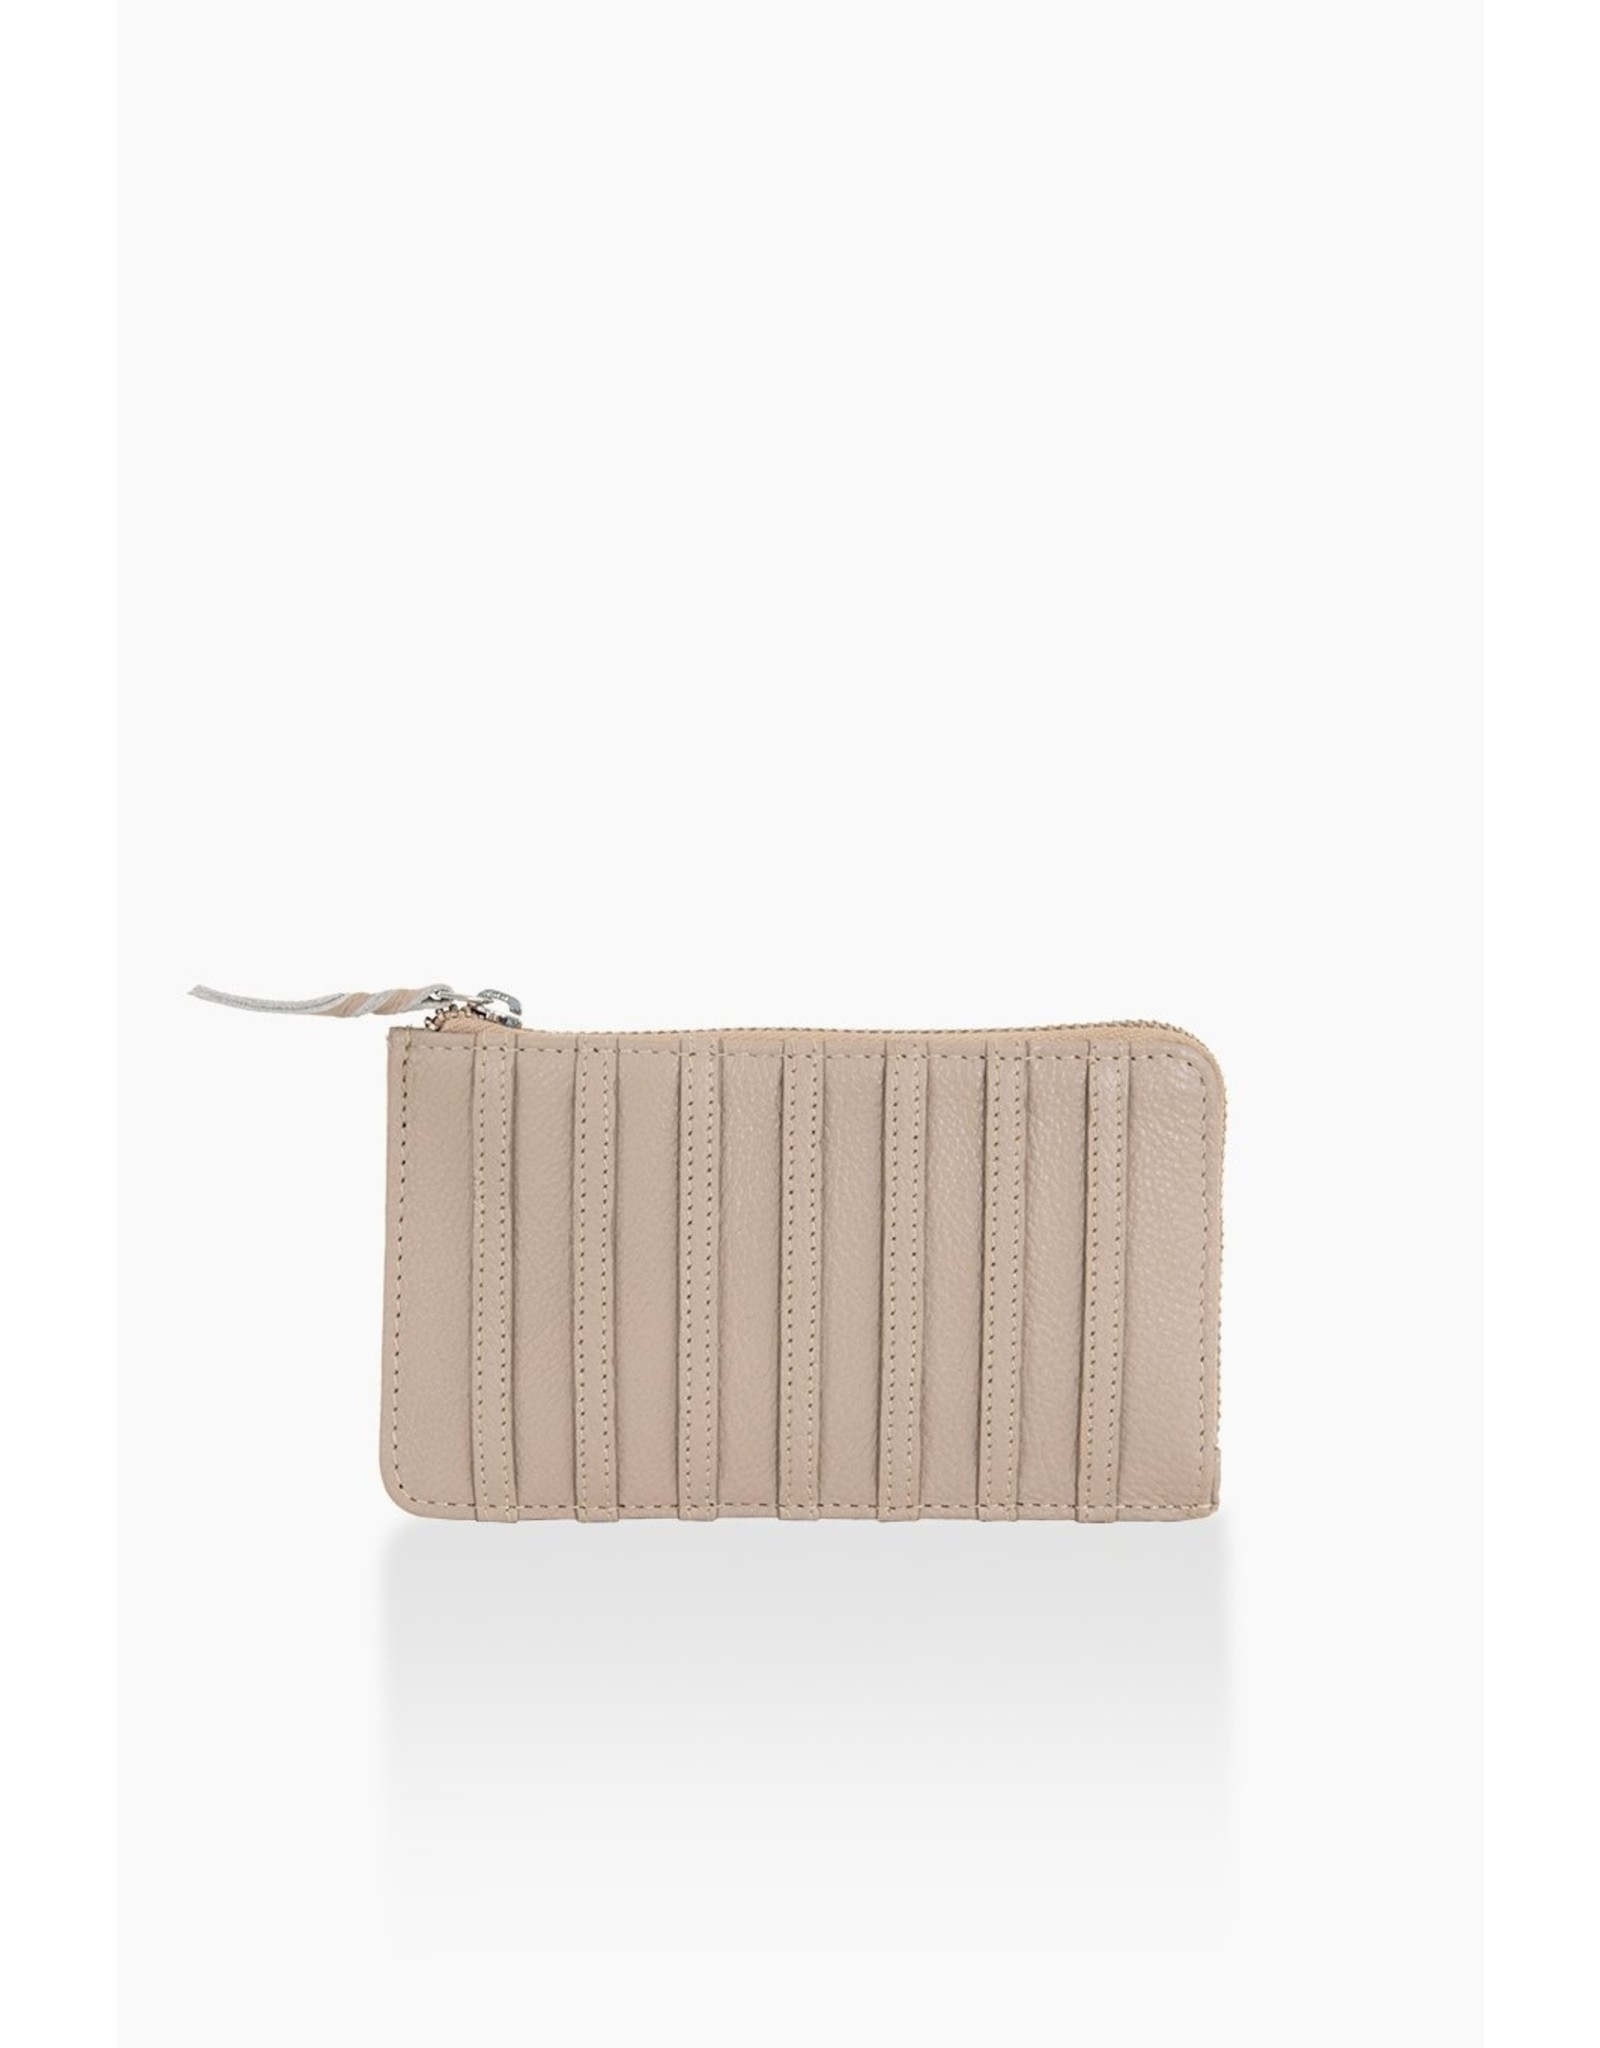 Portefeuille taupe stripes